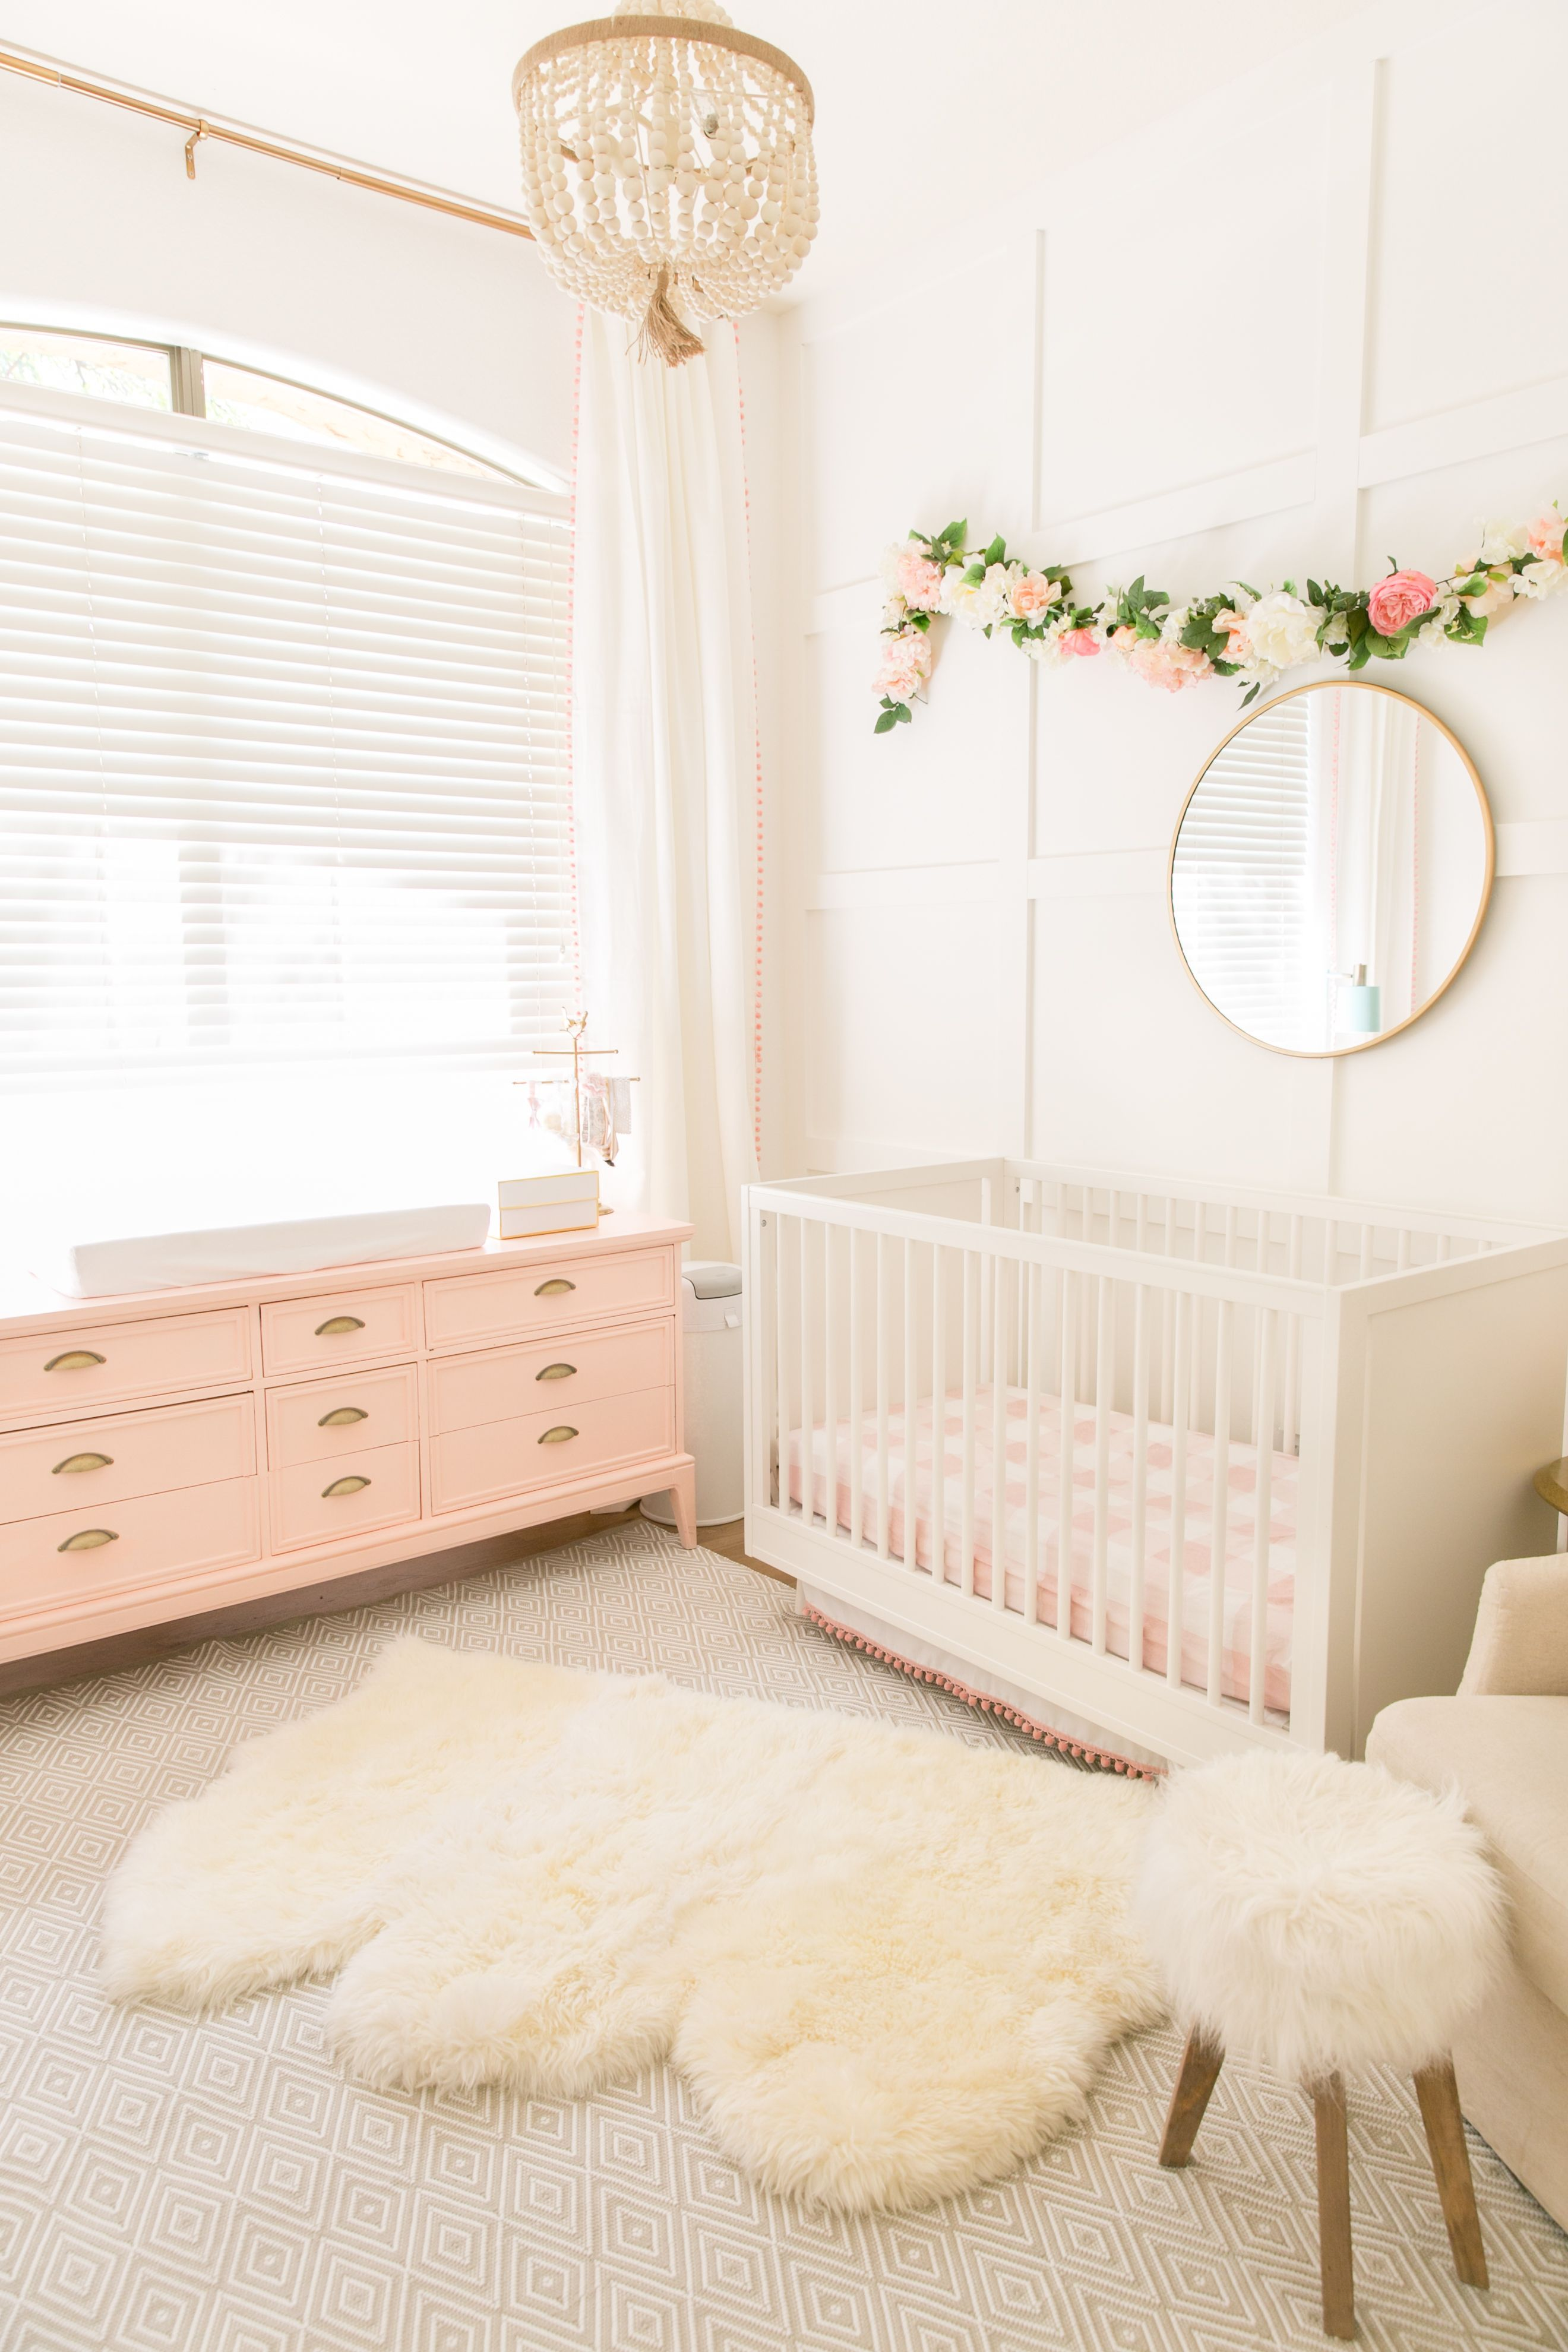 Pink And White Nursery Consign Gently Used Designer Maternity Brands You Love At Up To 90 Off Retail Motherhoodcloset